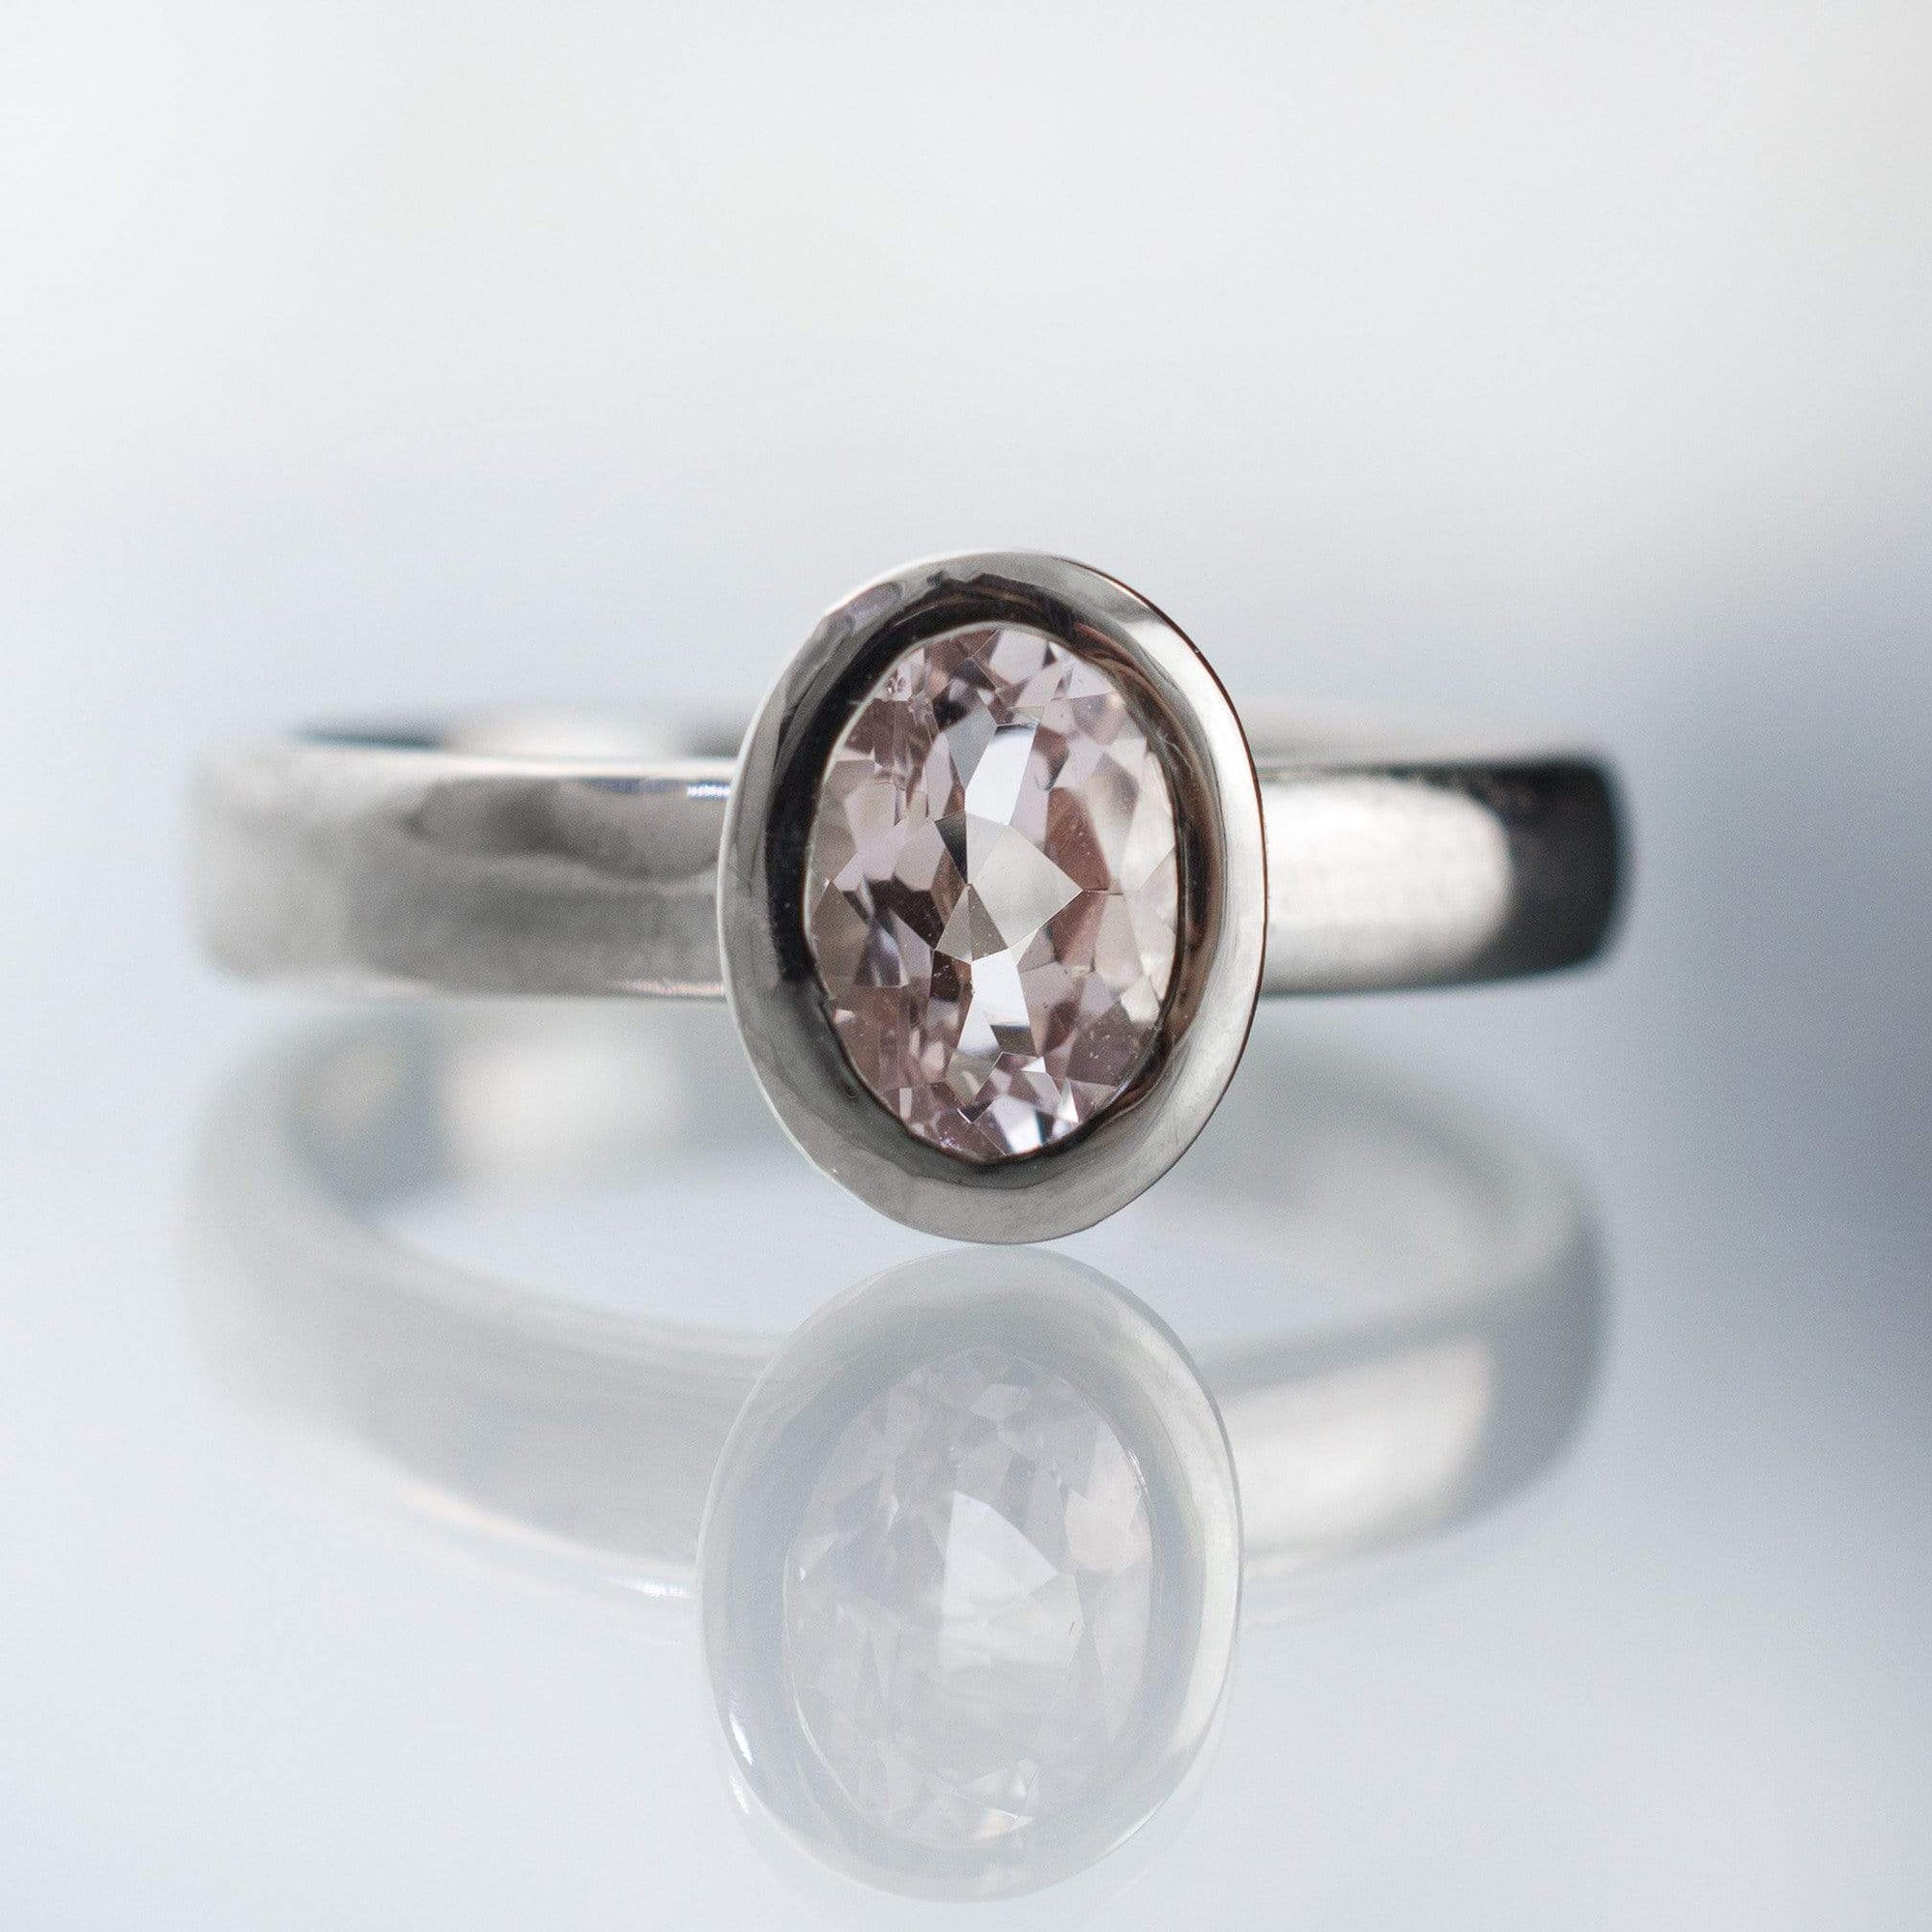 Oval Morganite Heavy Halo Bezel Solitaire Engagement Ring - by Nodeform